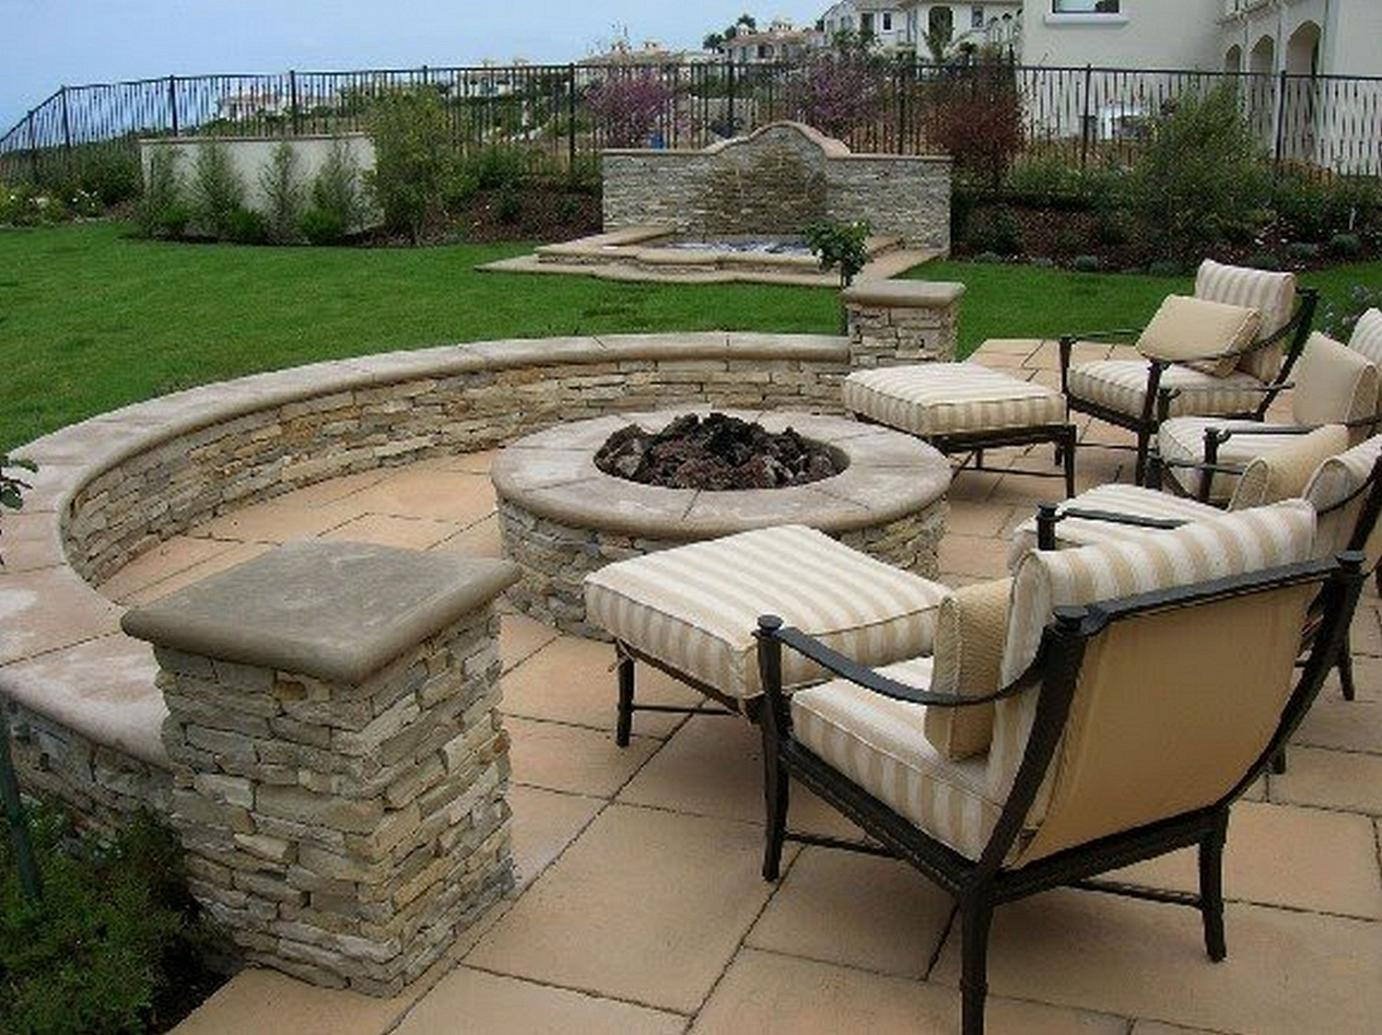 backyard patio ideas backyard paver patios paver design ideas - Patio Paver Design Ideas